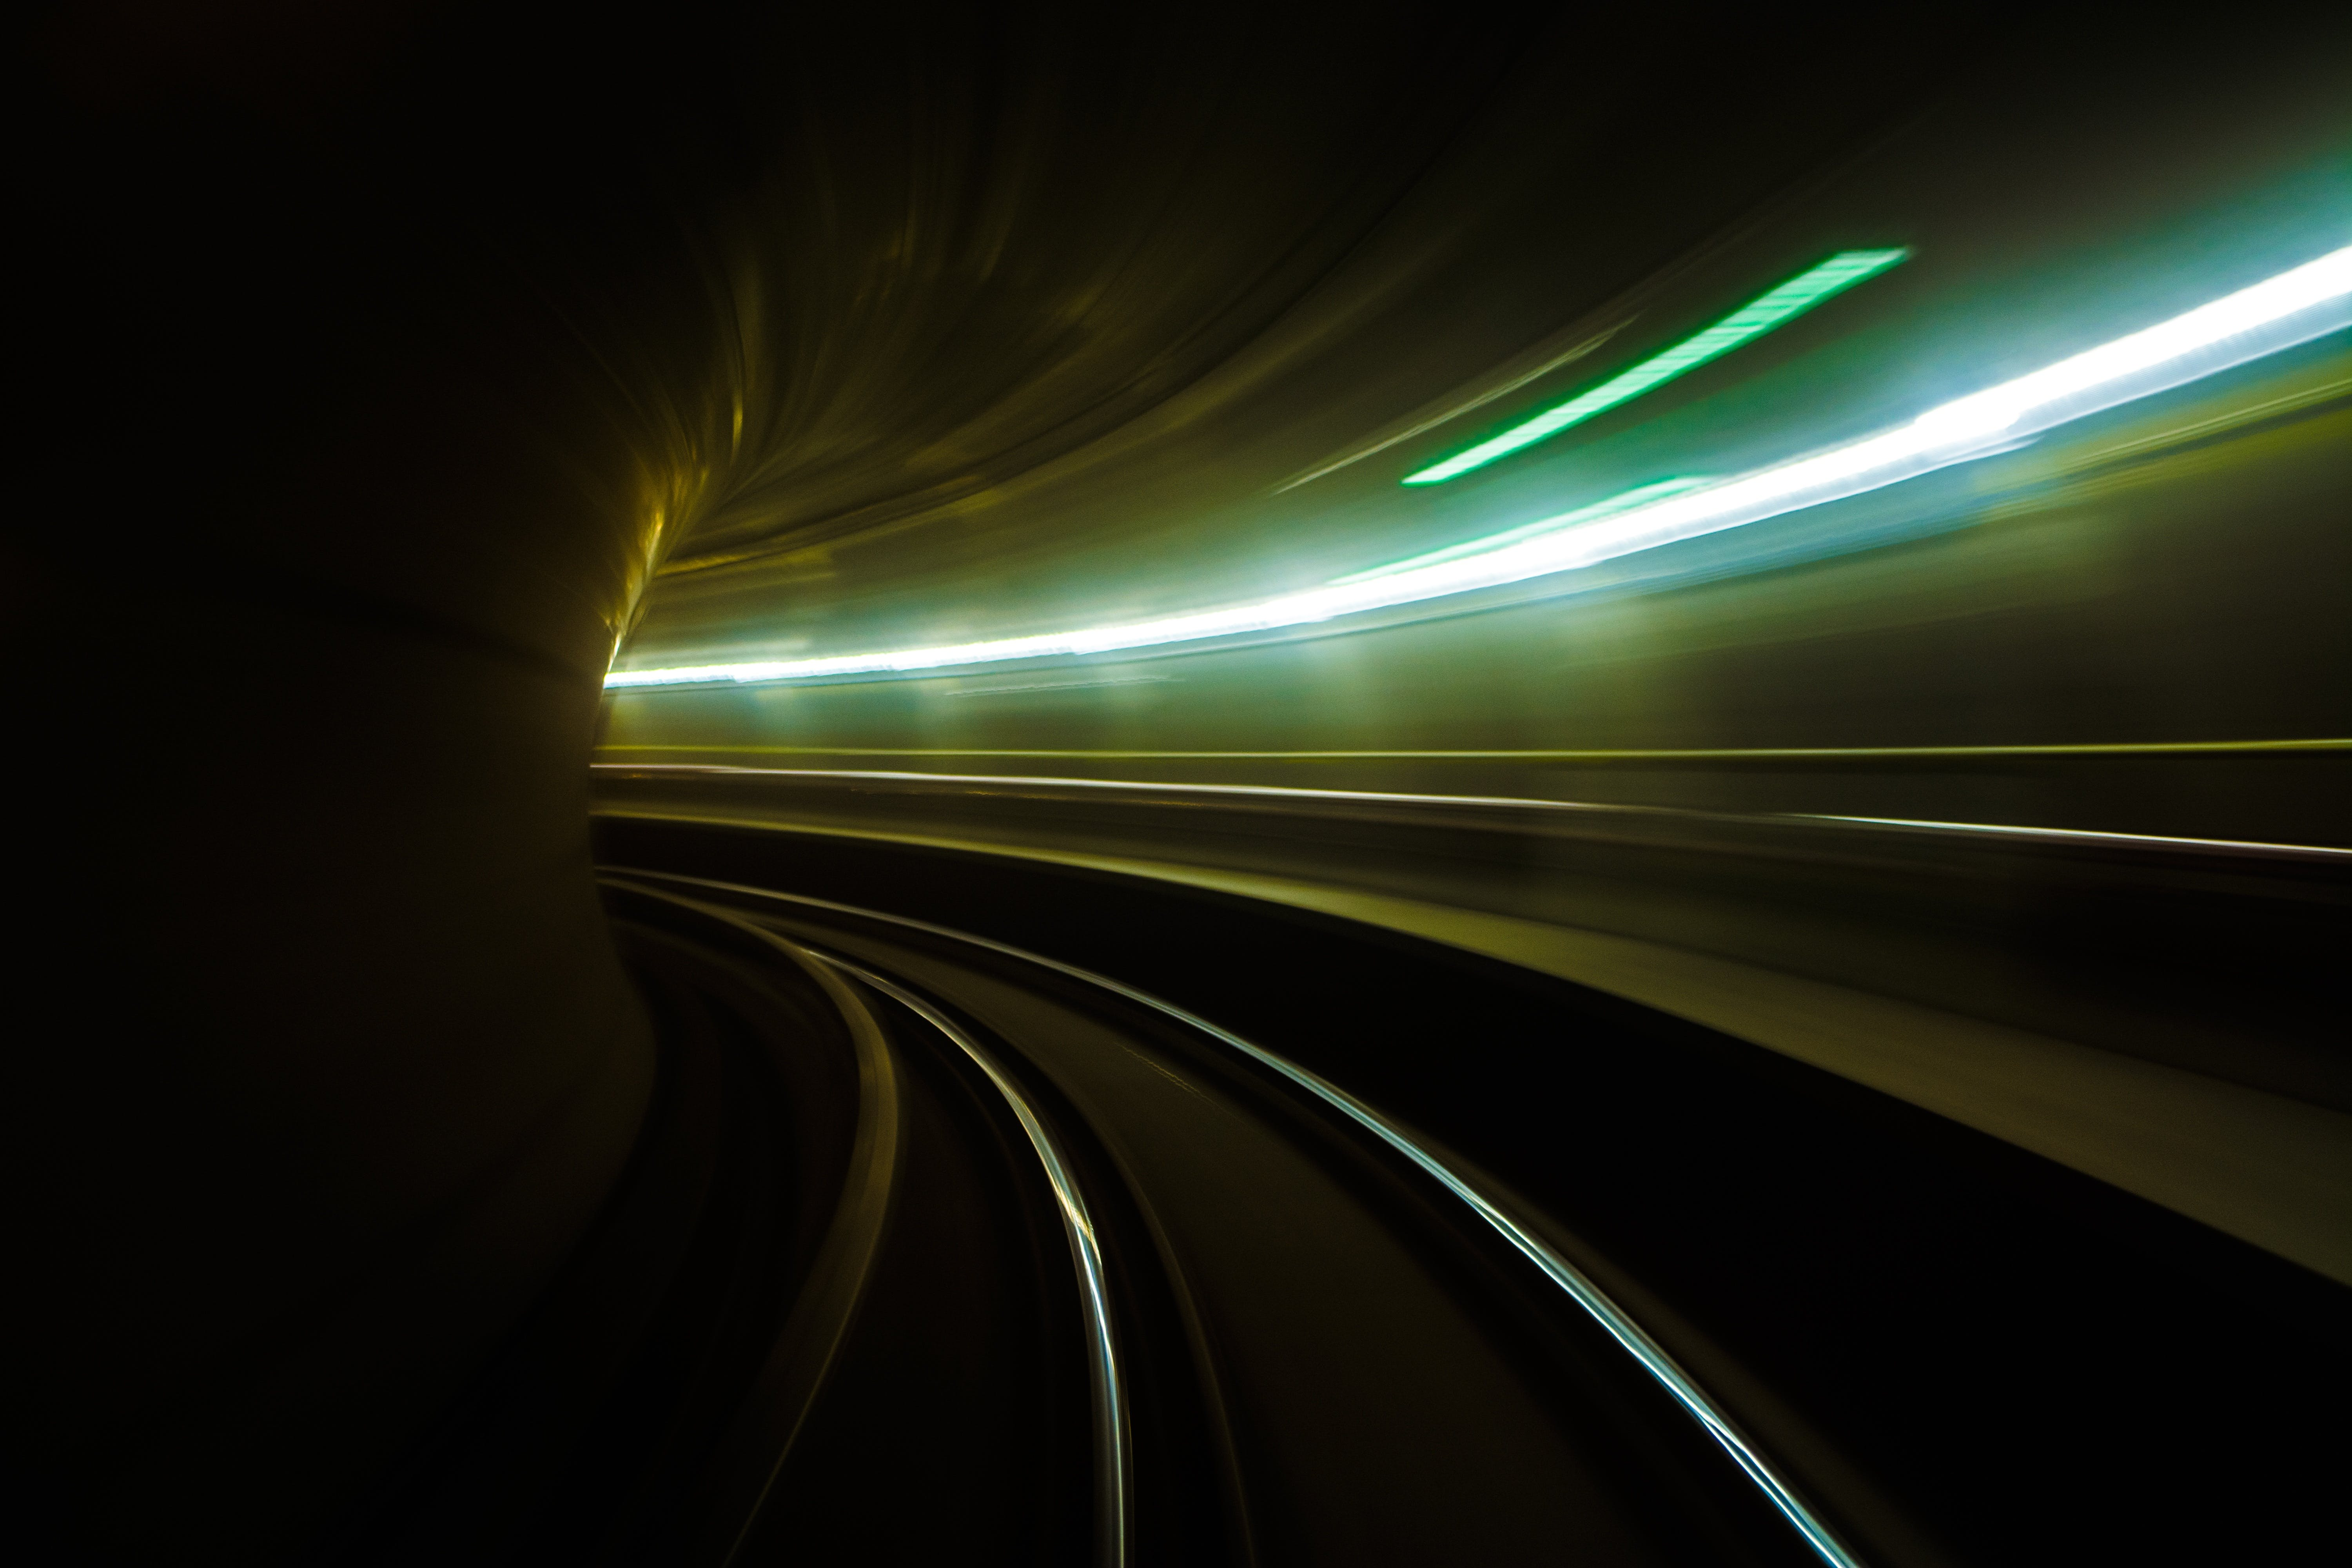 Timeplase Photography of Tunnel